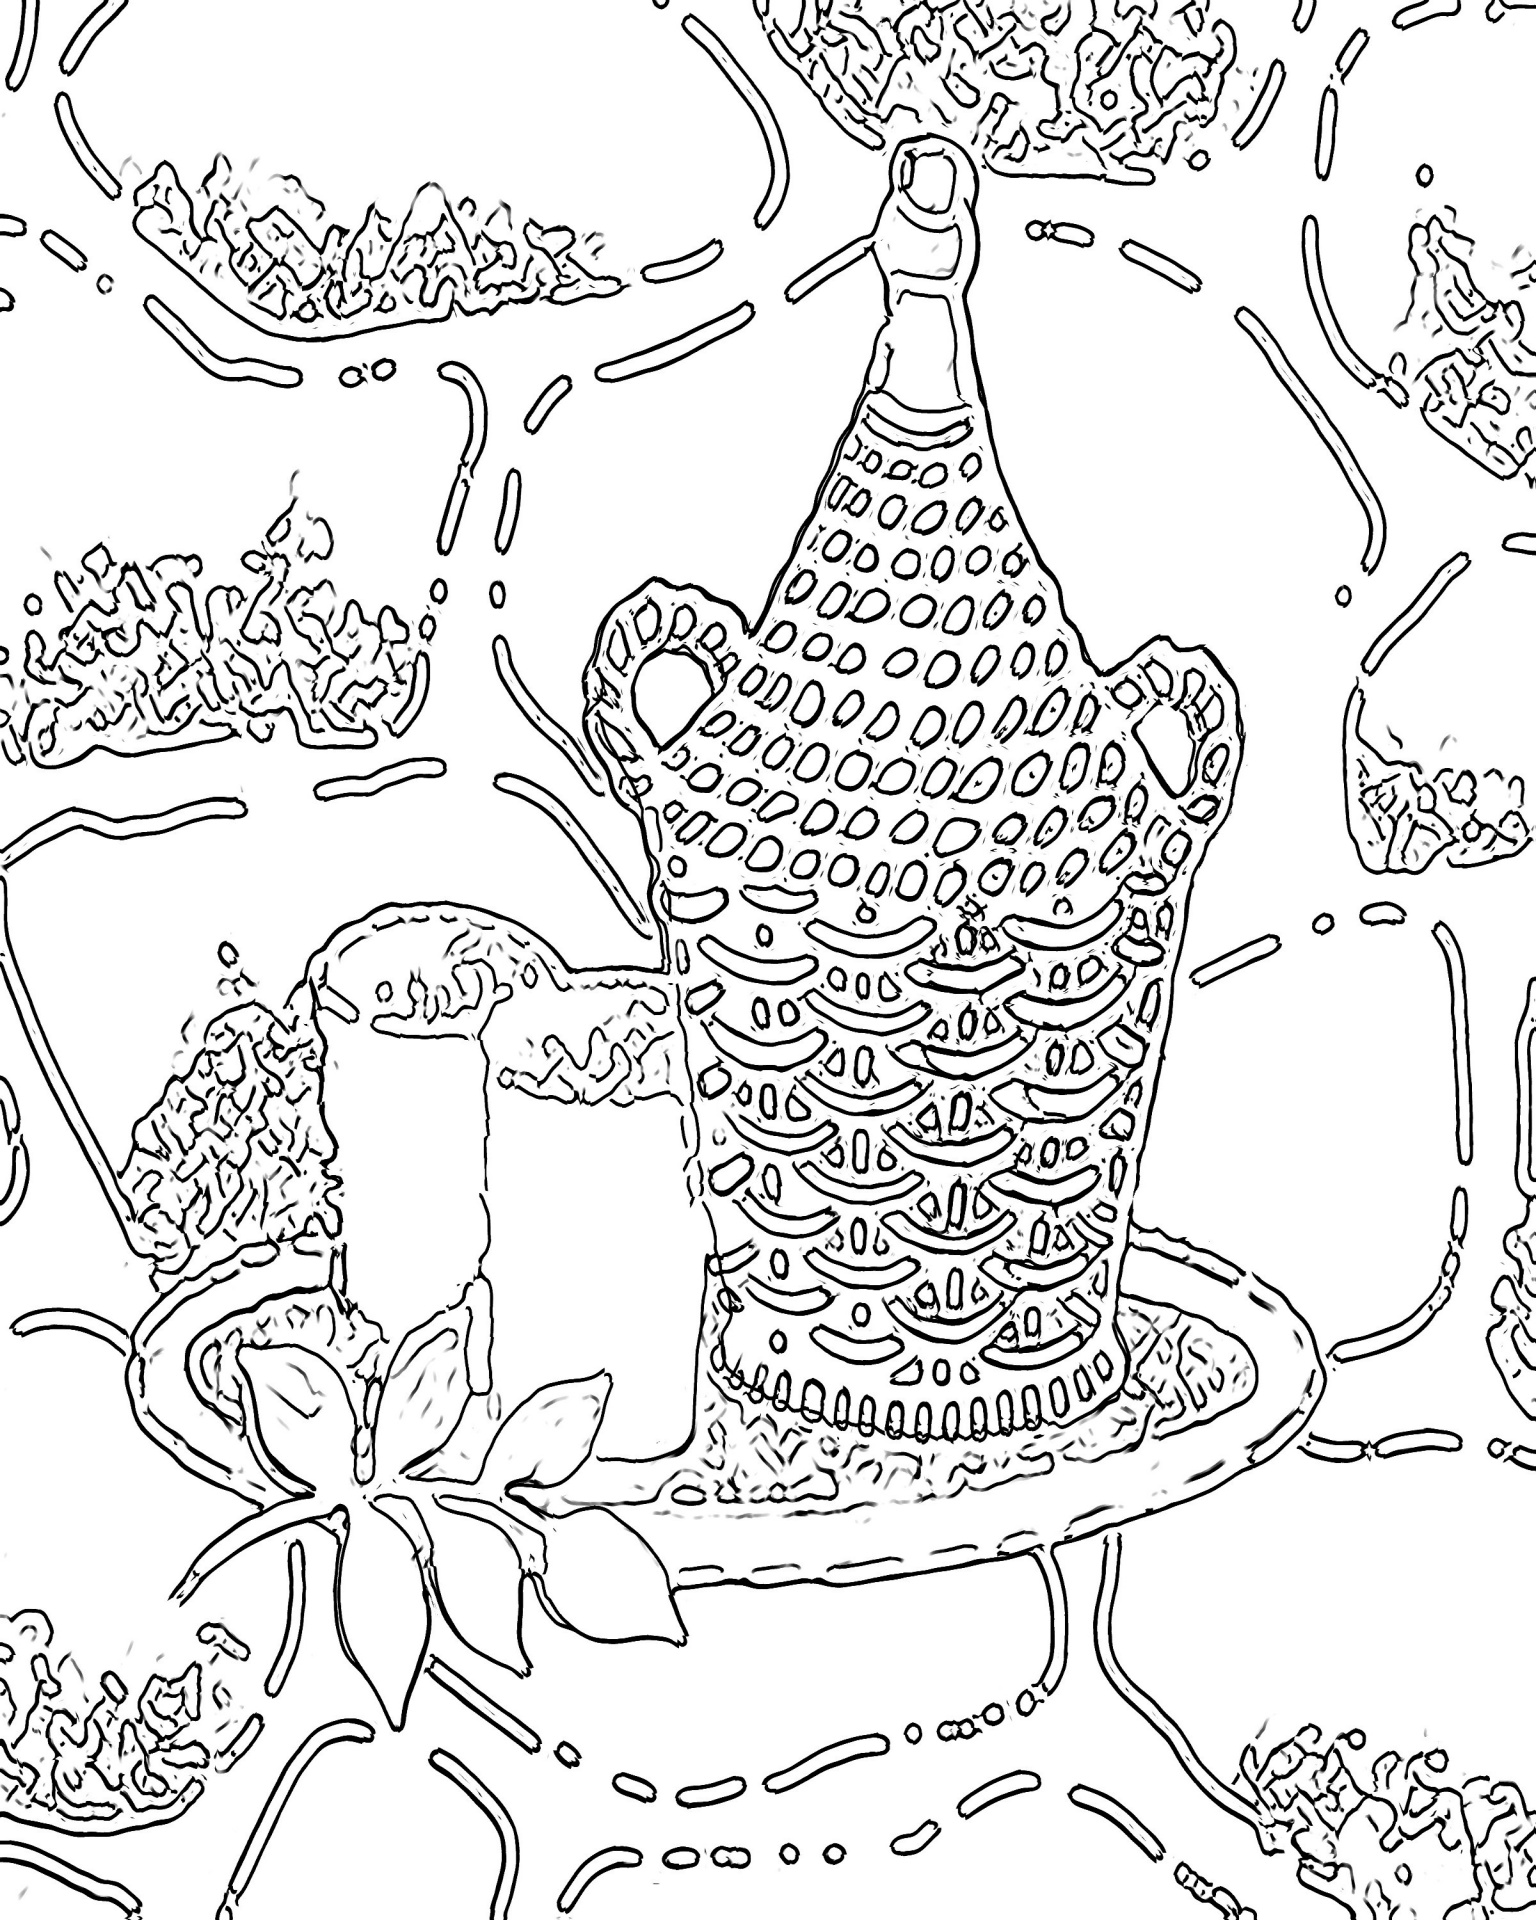 coloring sheet for adults cat coloring pages for adults best coloring pages for kids sheet for coloring adults